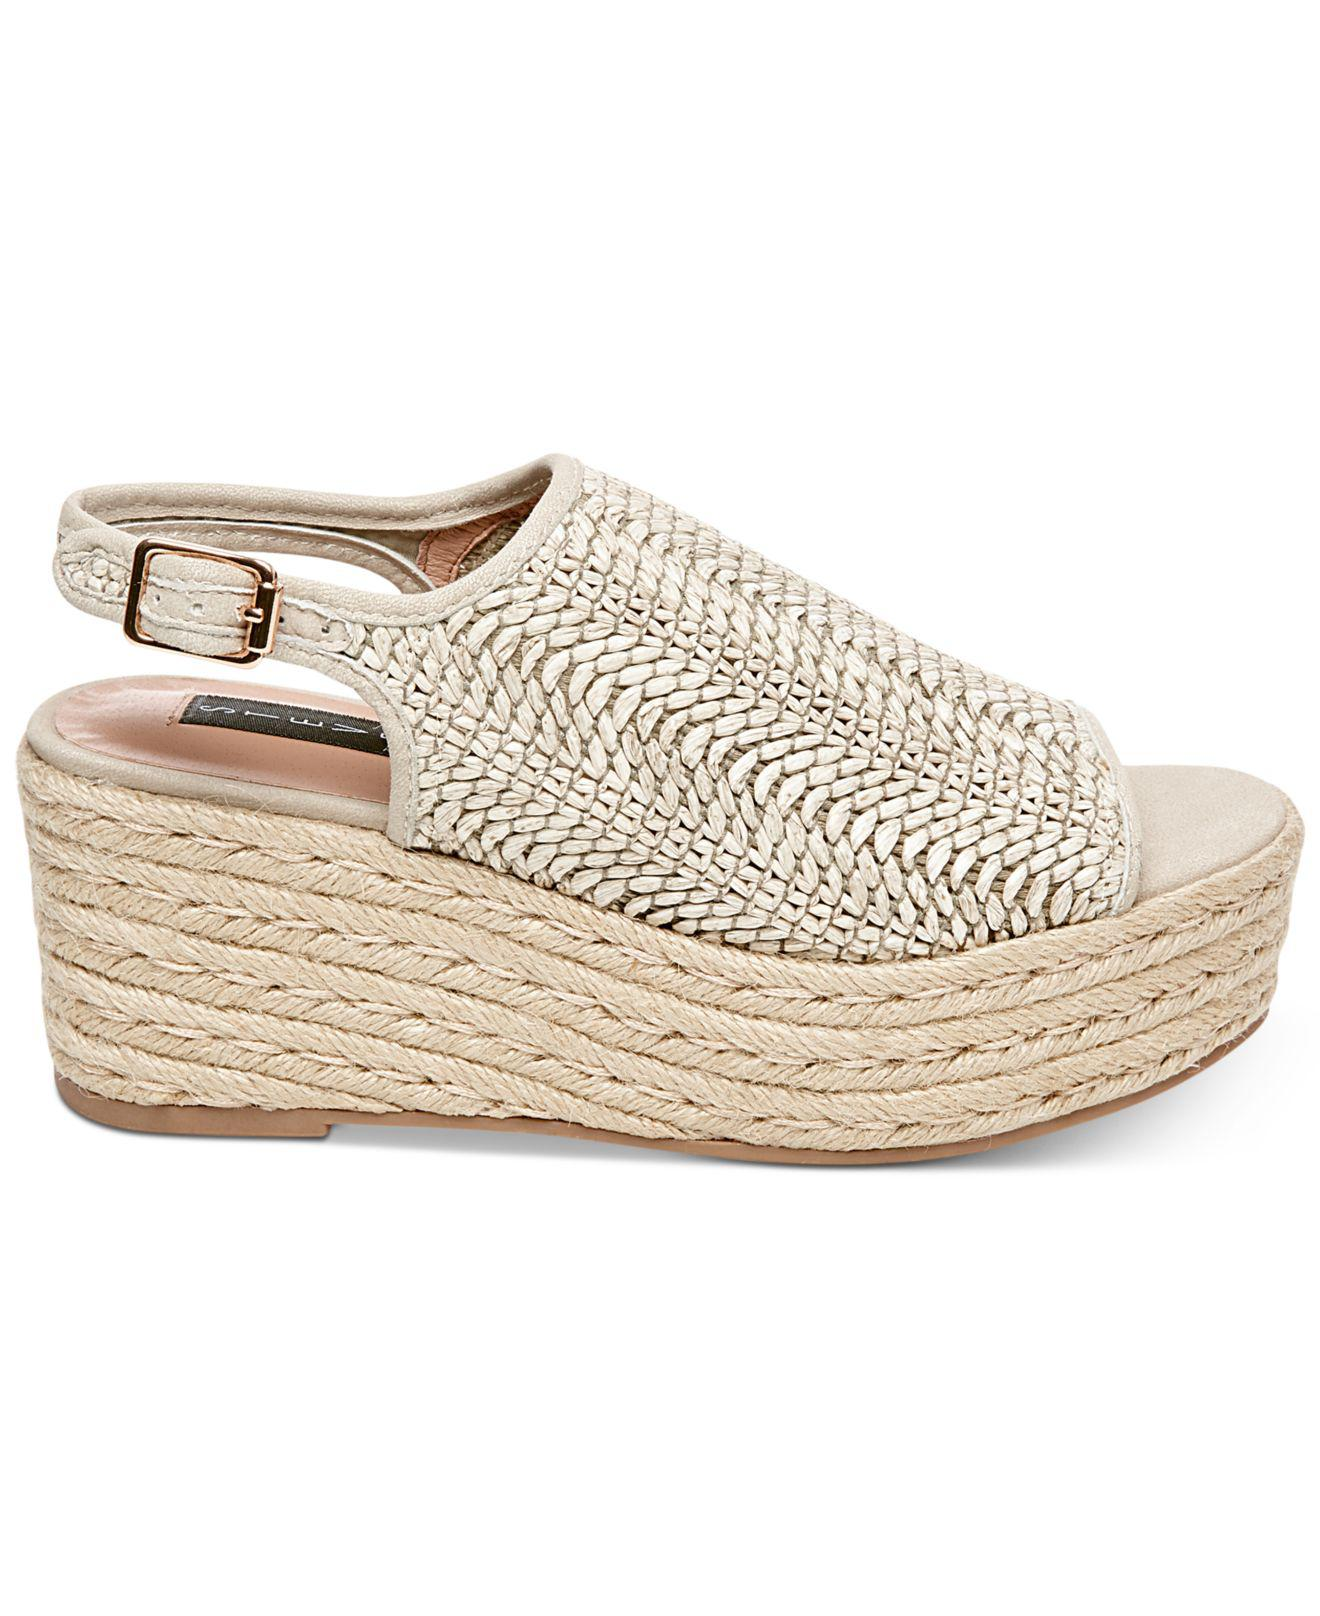 c4acce04807 Lyst - Steven by Steve Madden Courage Espadrille Wedge Sandals in Natural -  Save 36%